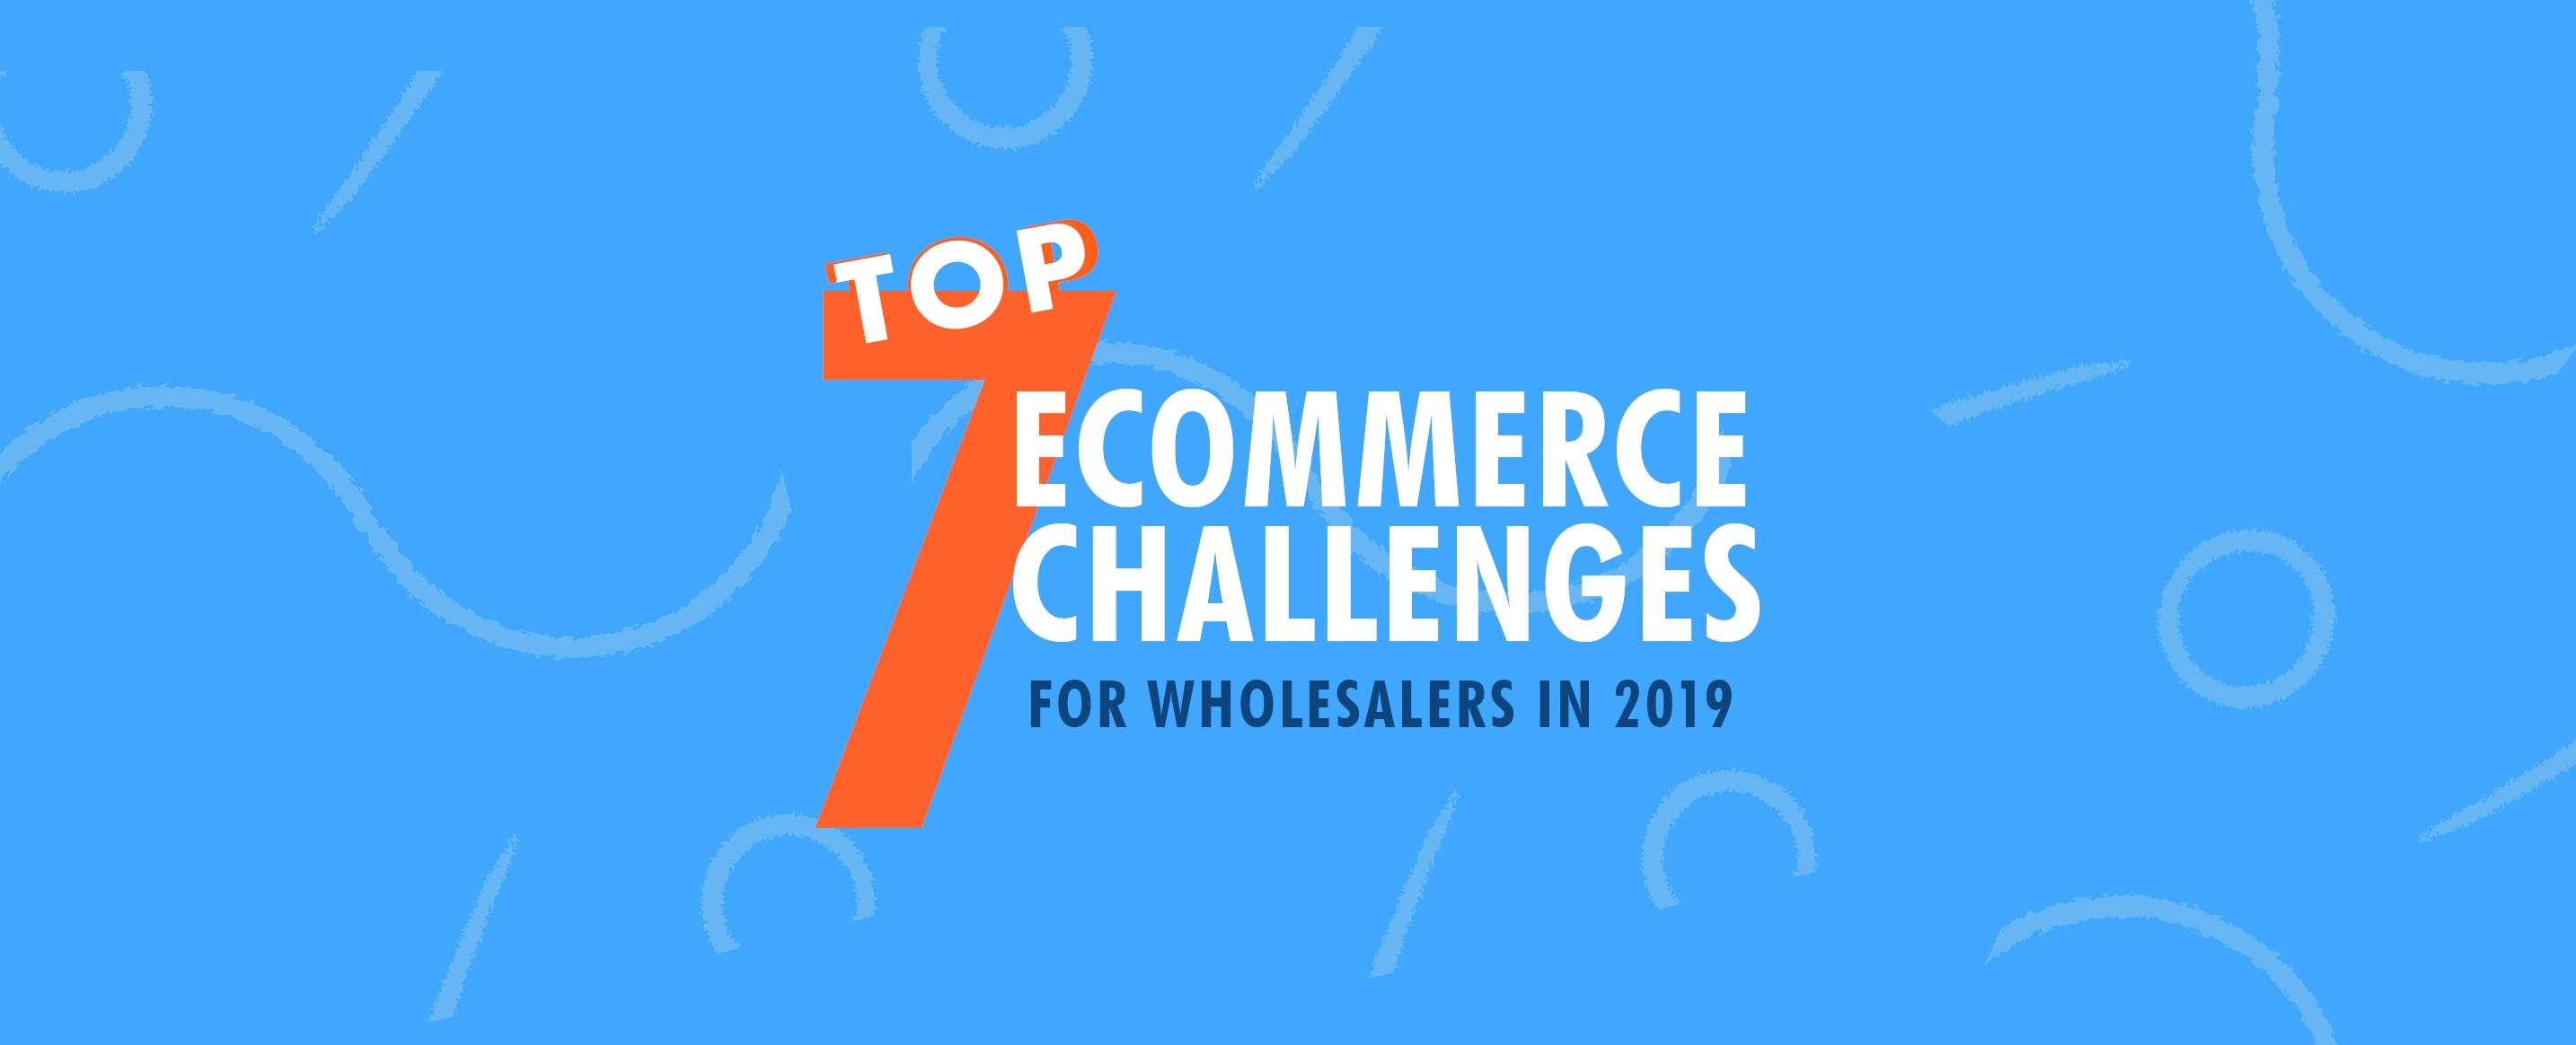 Top-7-B2B-Ecommerce-Challenges-for-Wholesalers-in-2019